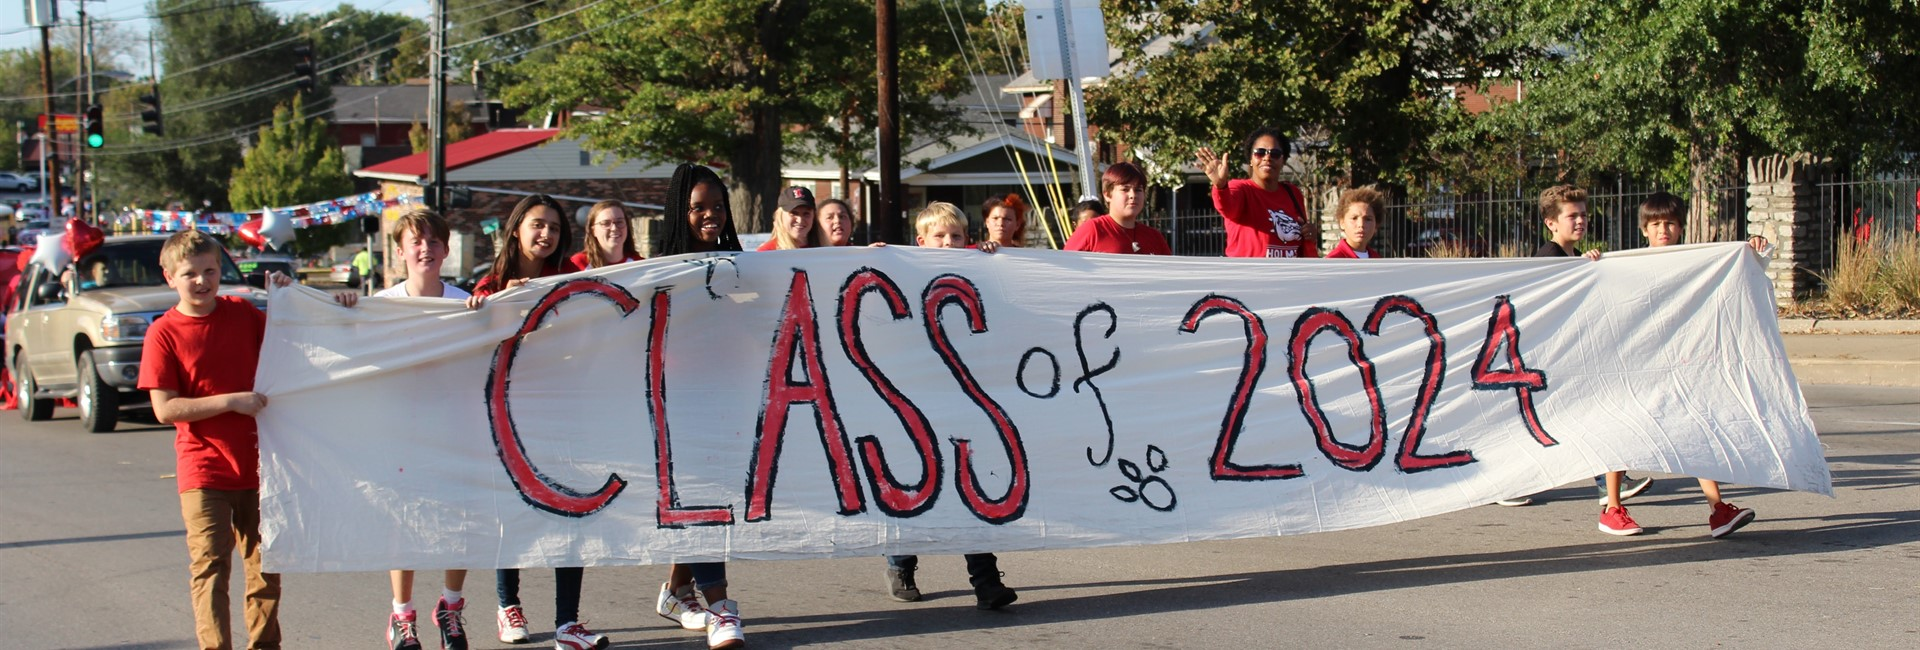 The Class of 2024 in the Homecoming Parade